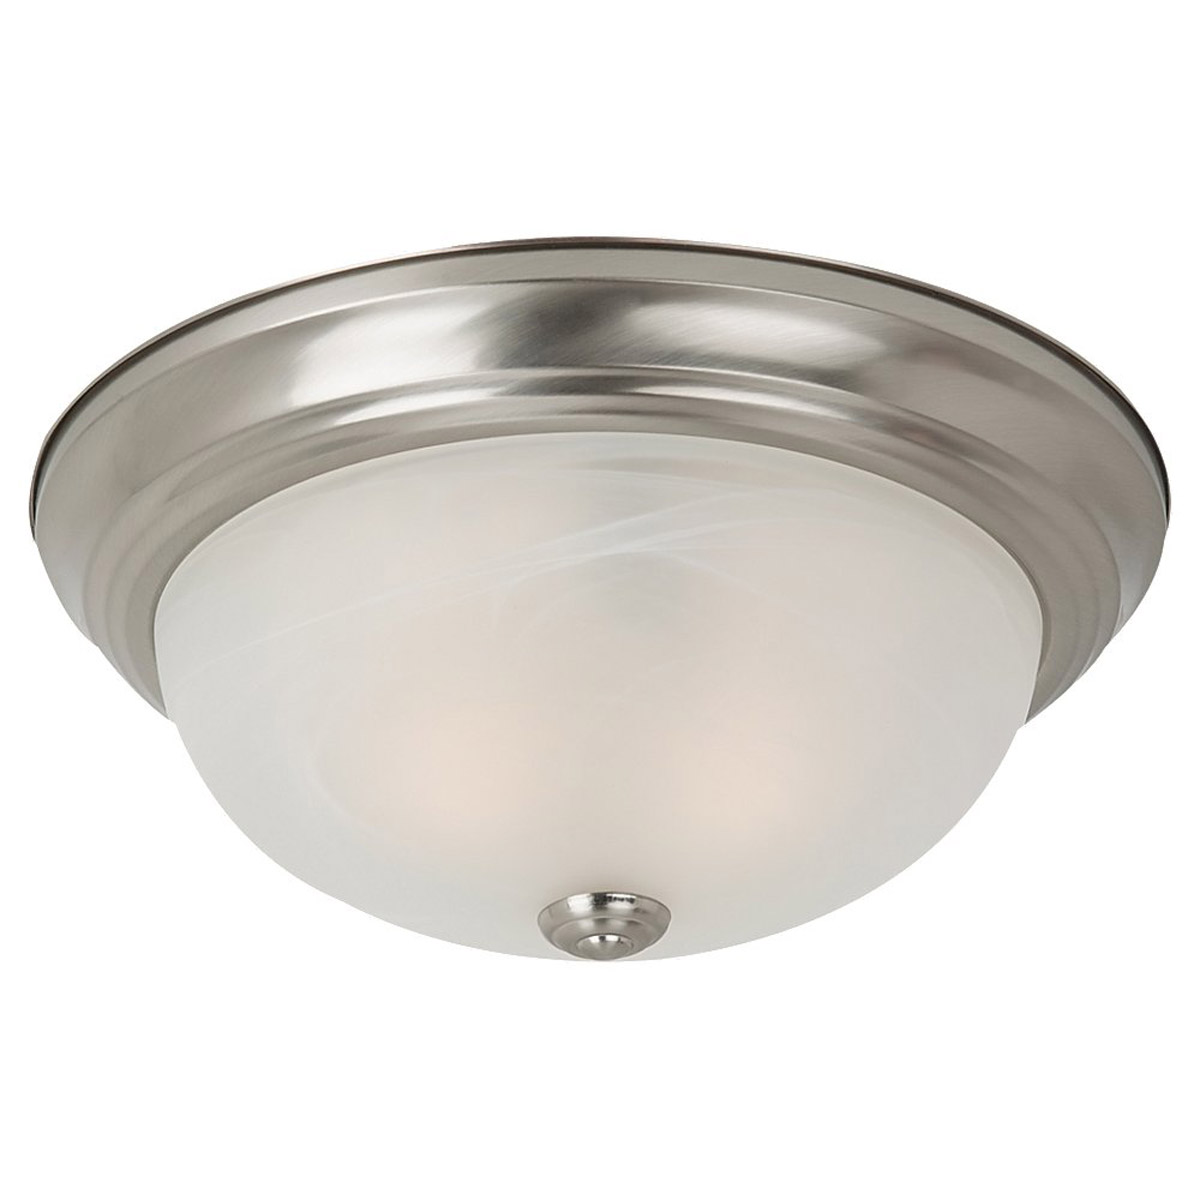 Sea Gull Lighting Windgate 1 Light Flush Mount in Brushed Nickel 75940BLE-962